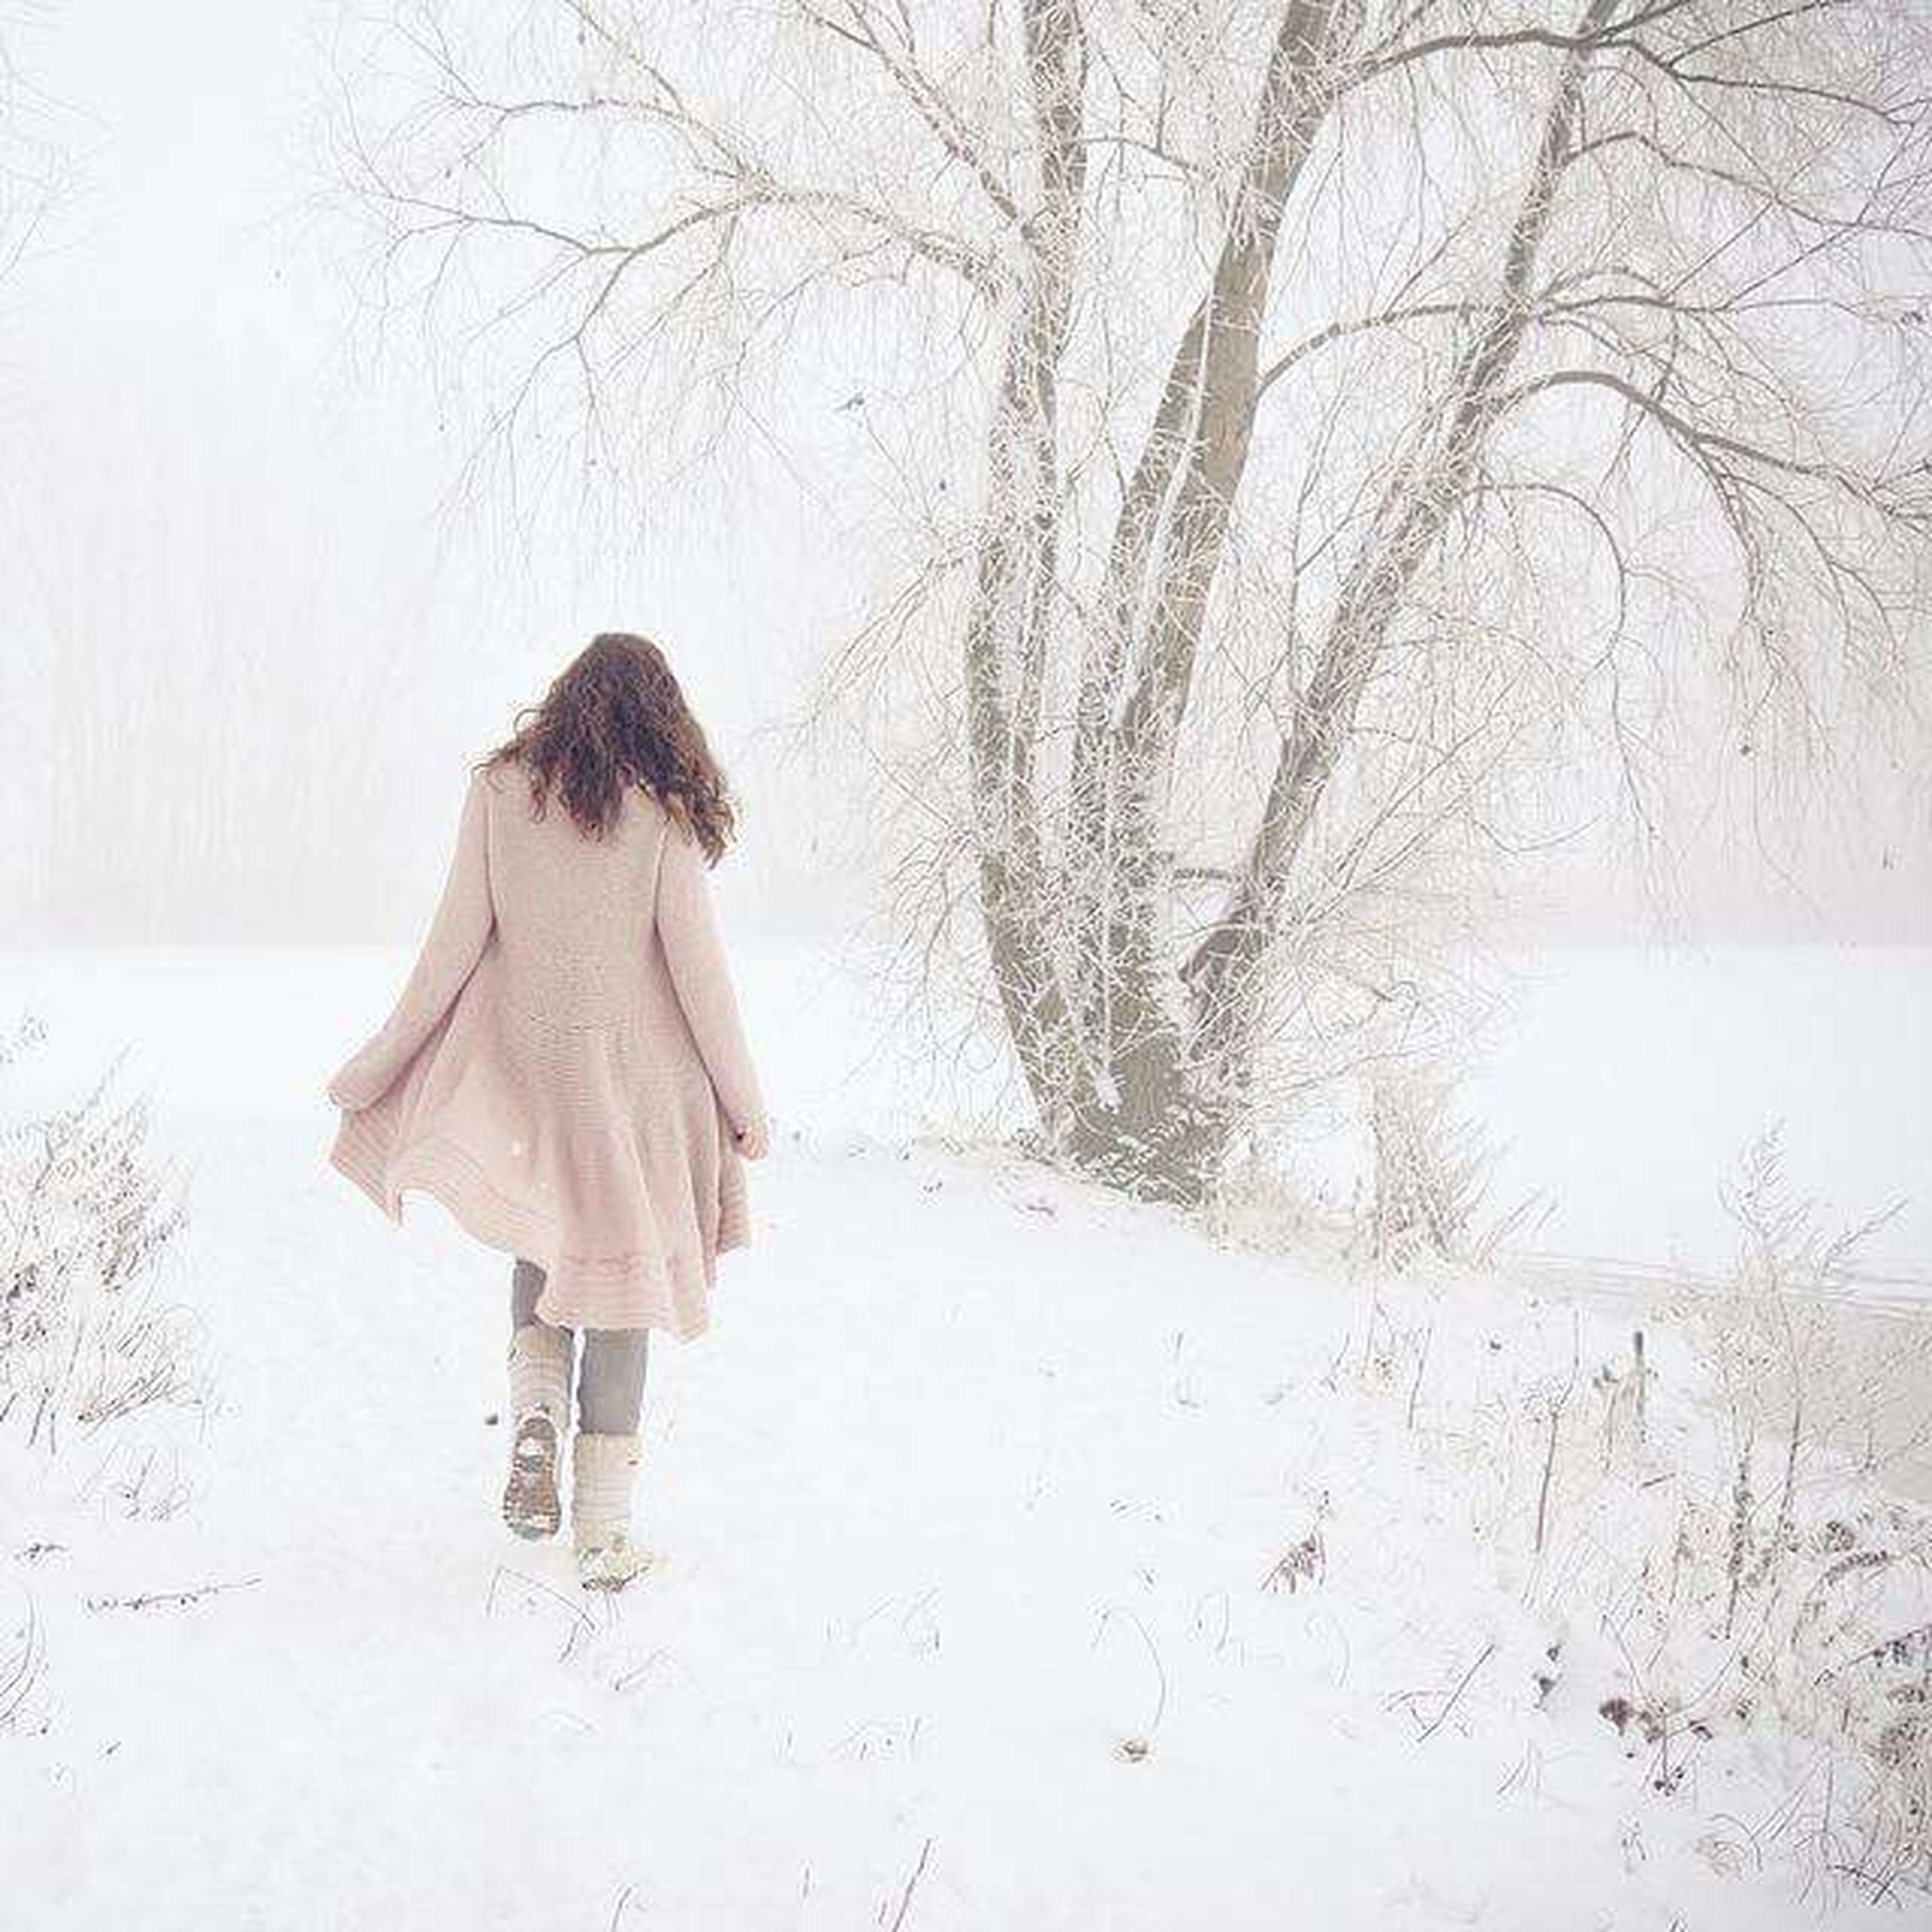 full length, lifestyles, rear view, tree, leisure activity, standing, walking, person, casual clothing, winter, season, bare tree, weather, nature, field, cold temperature, girls, day